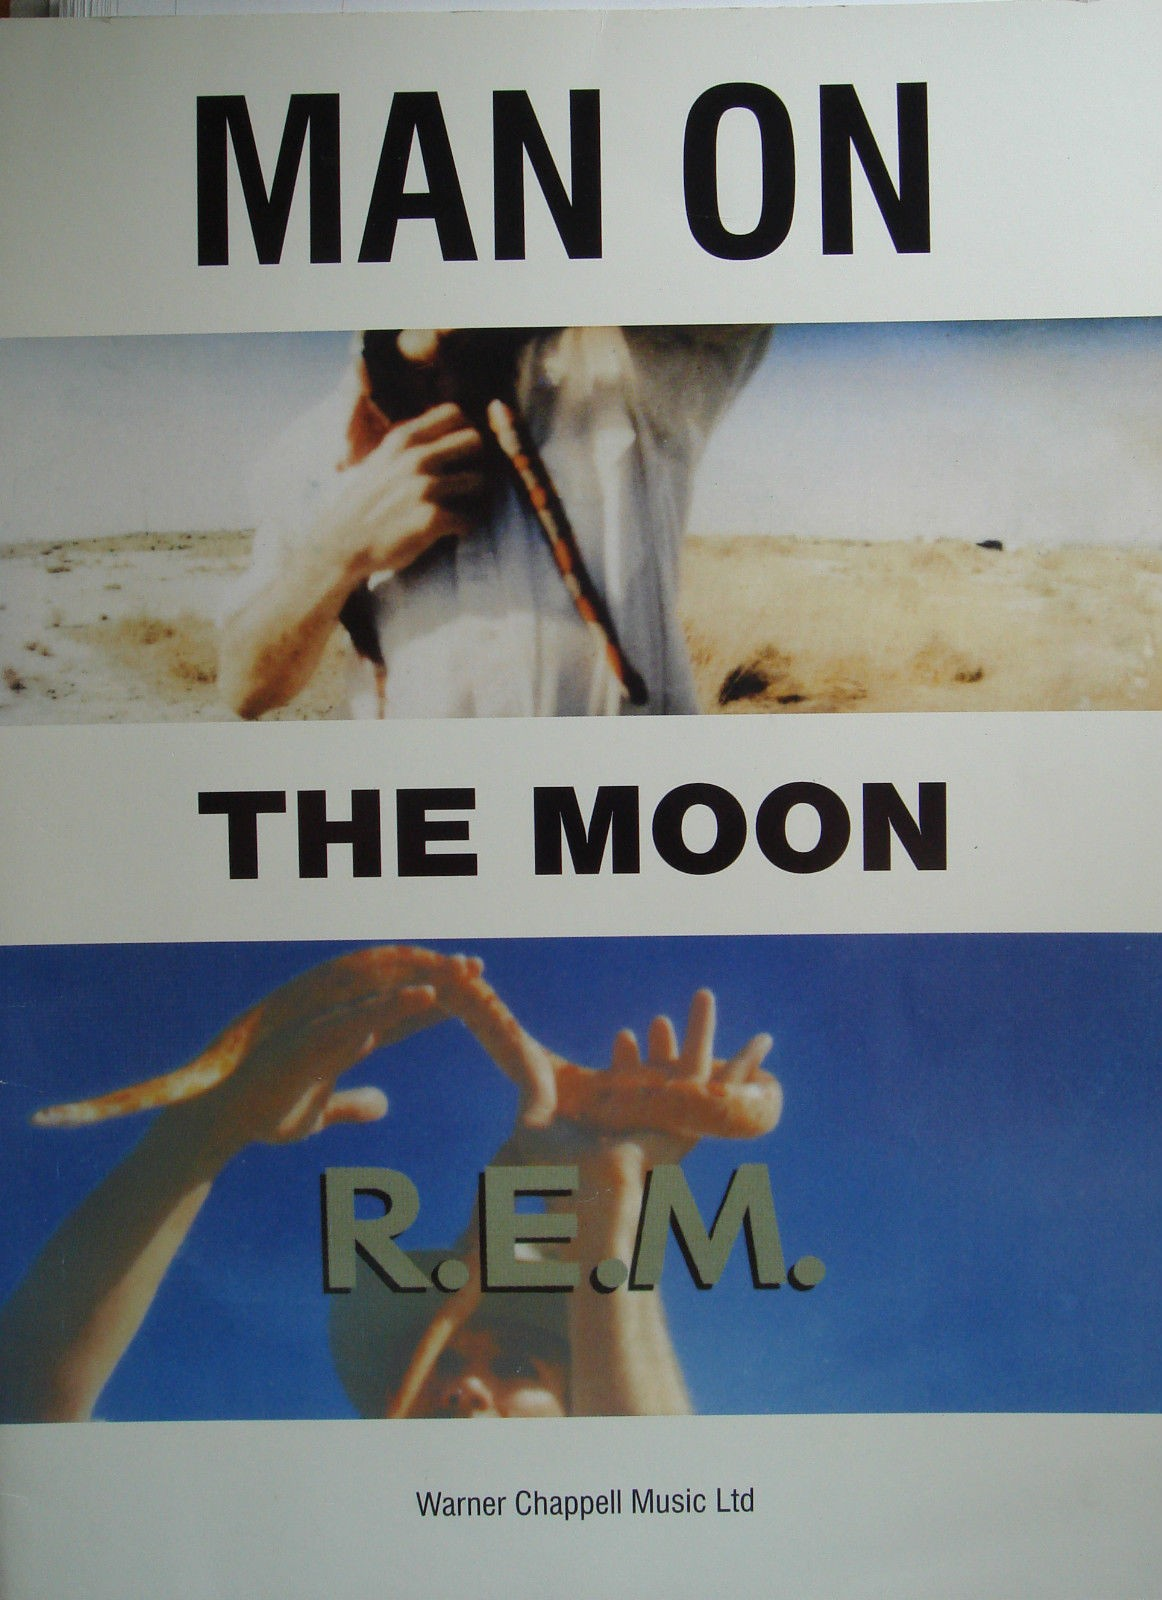 Man On The Moon R.E.M. Full Score Sheet Music Songbook Country Folk Rock B73